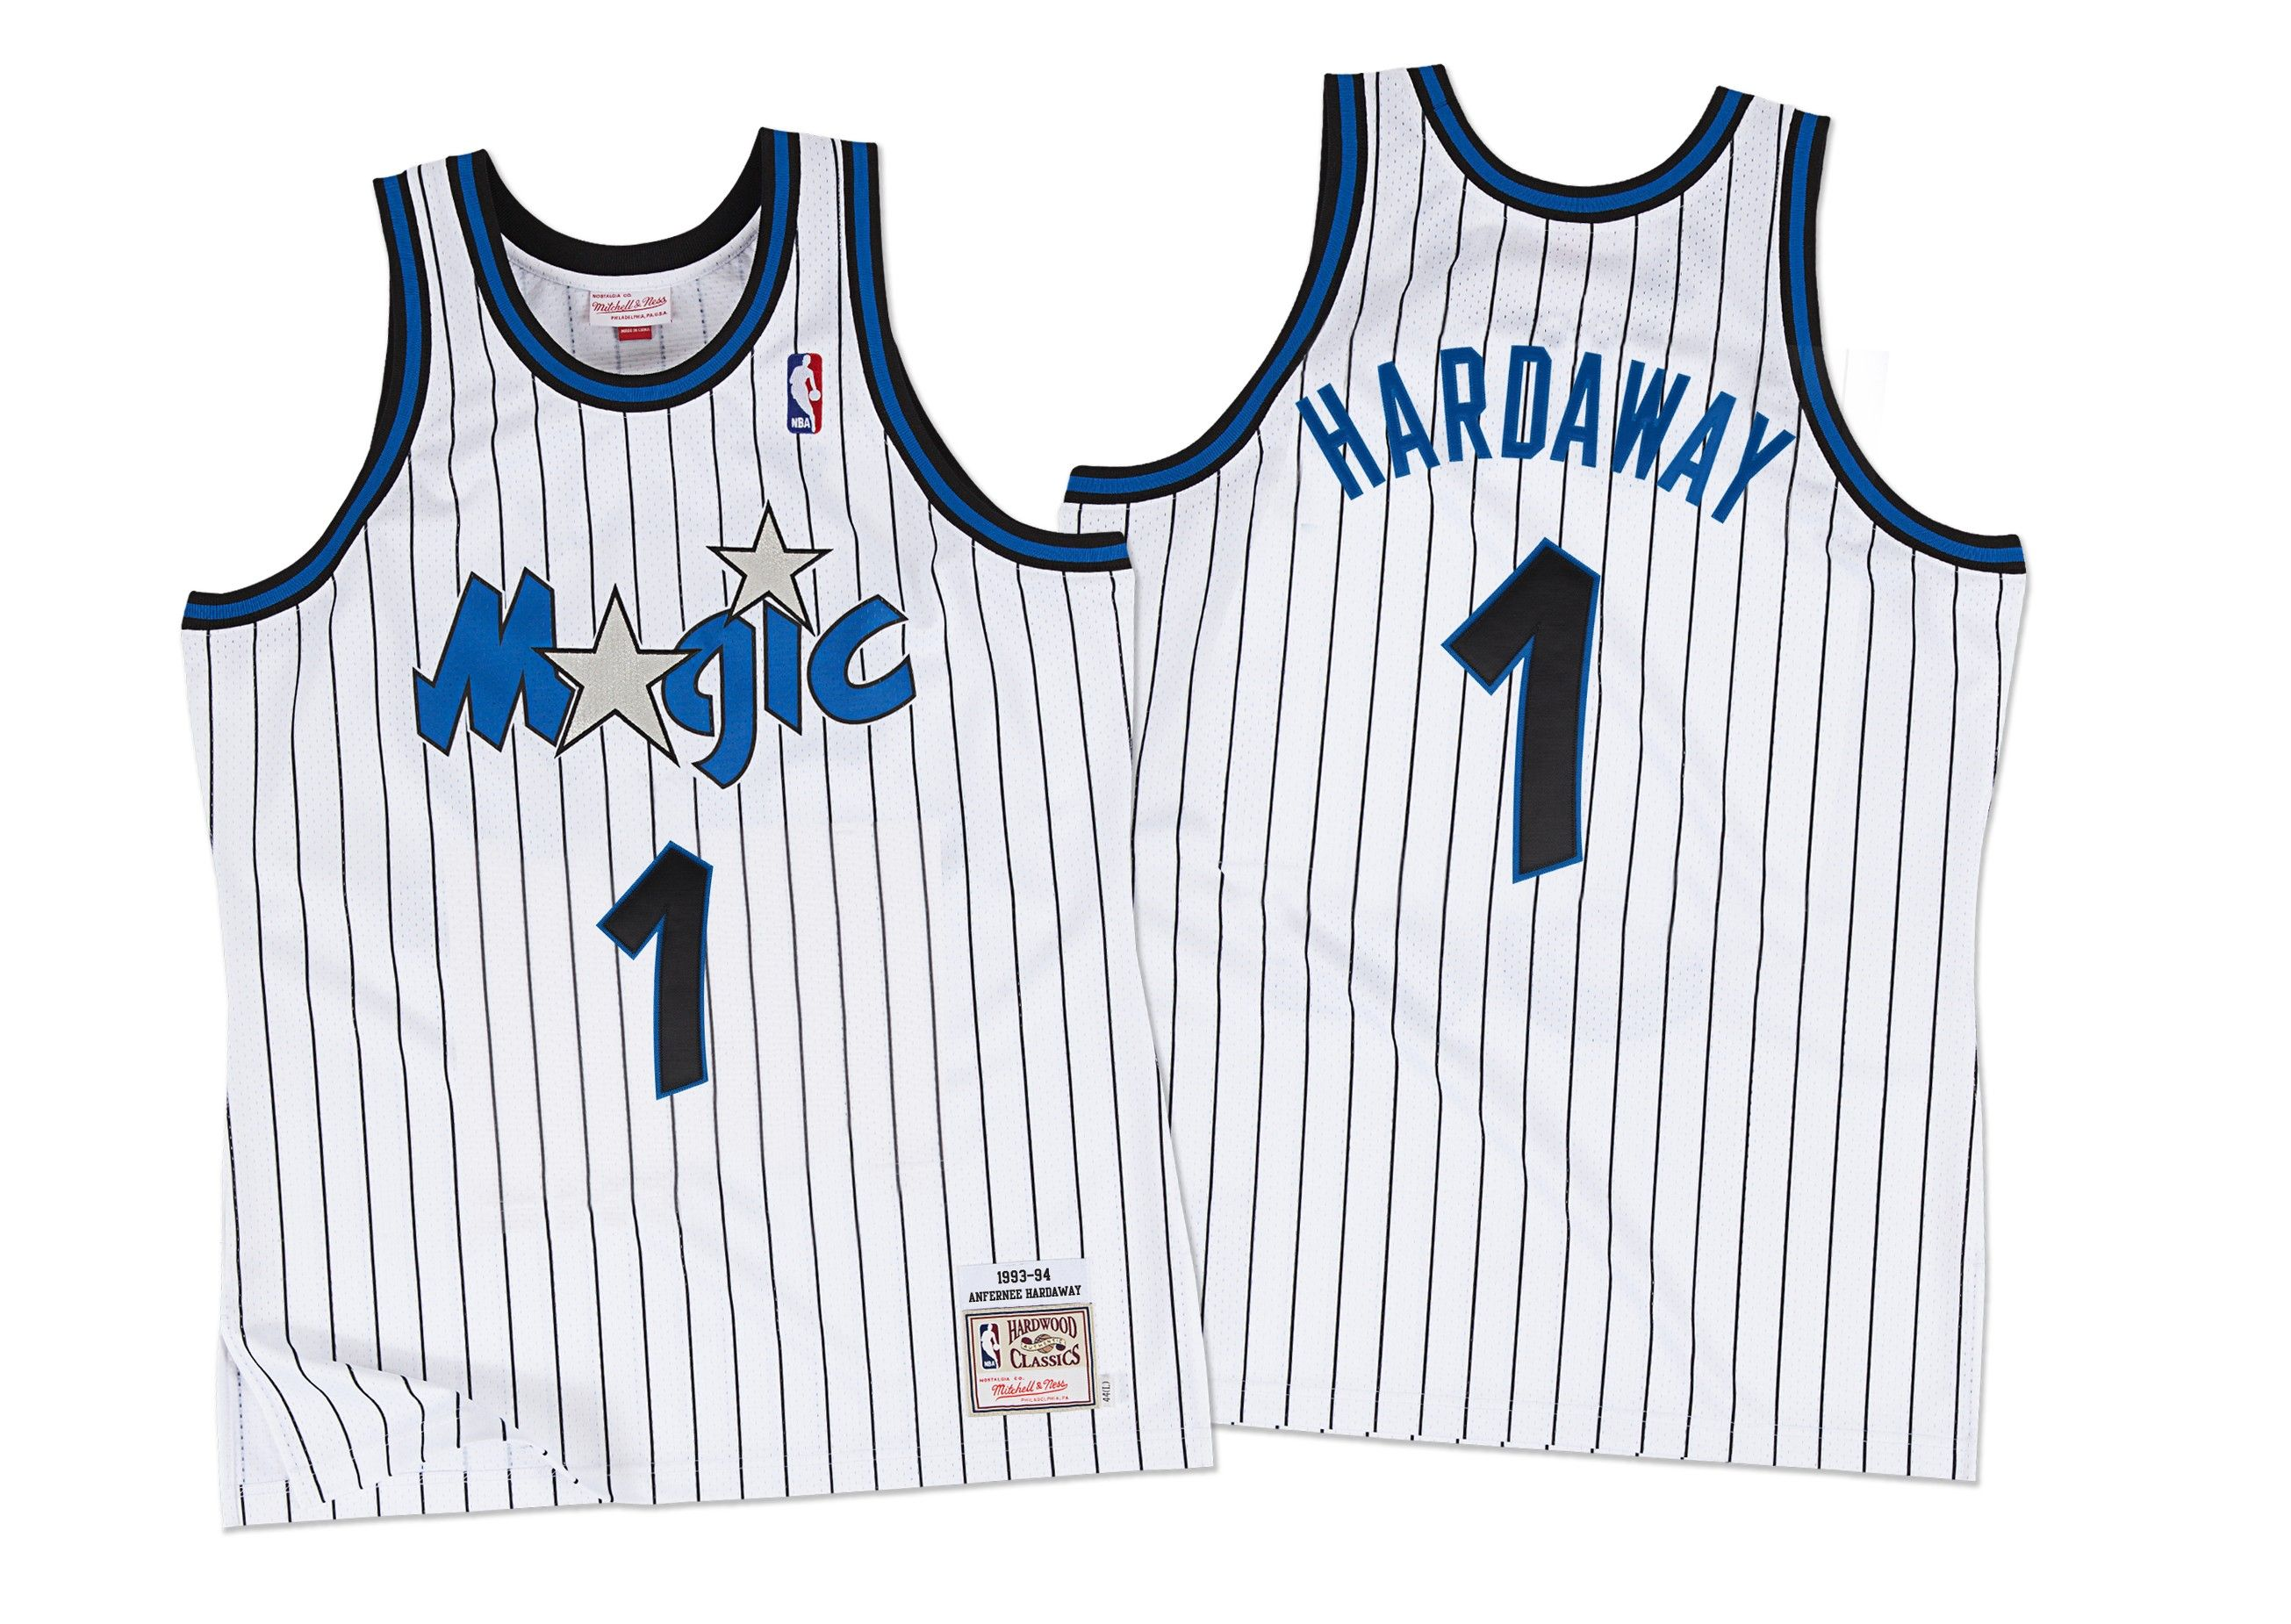 559c70bf5 Penny Hardaway 1993-94 Authentic Jersey Orlando Magic